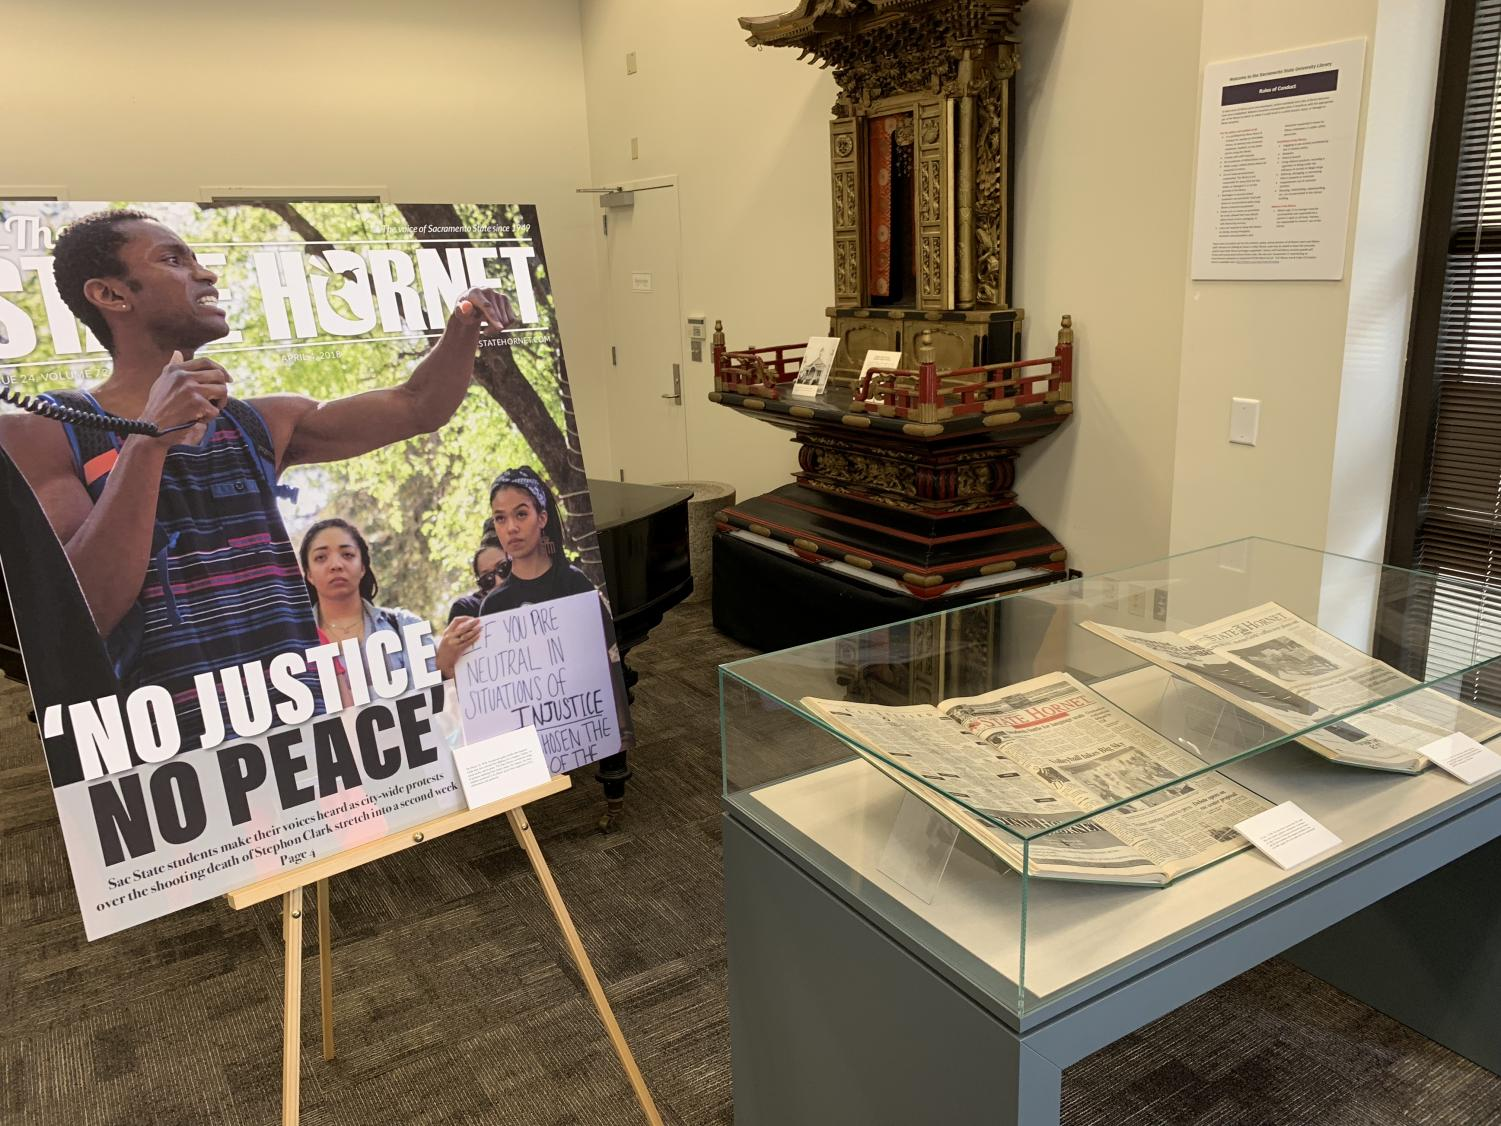 Exhibit highlights include more recent events, such as campus reactions to Stephon Clark's death , left, and a 1998 issue celebrating the volleyball team's Big Sky Conference championship, middle.